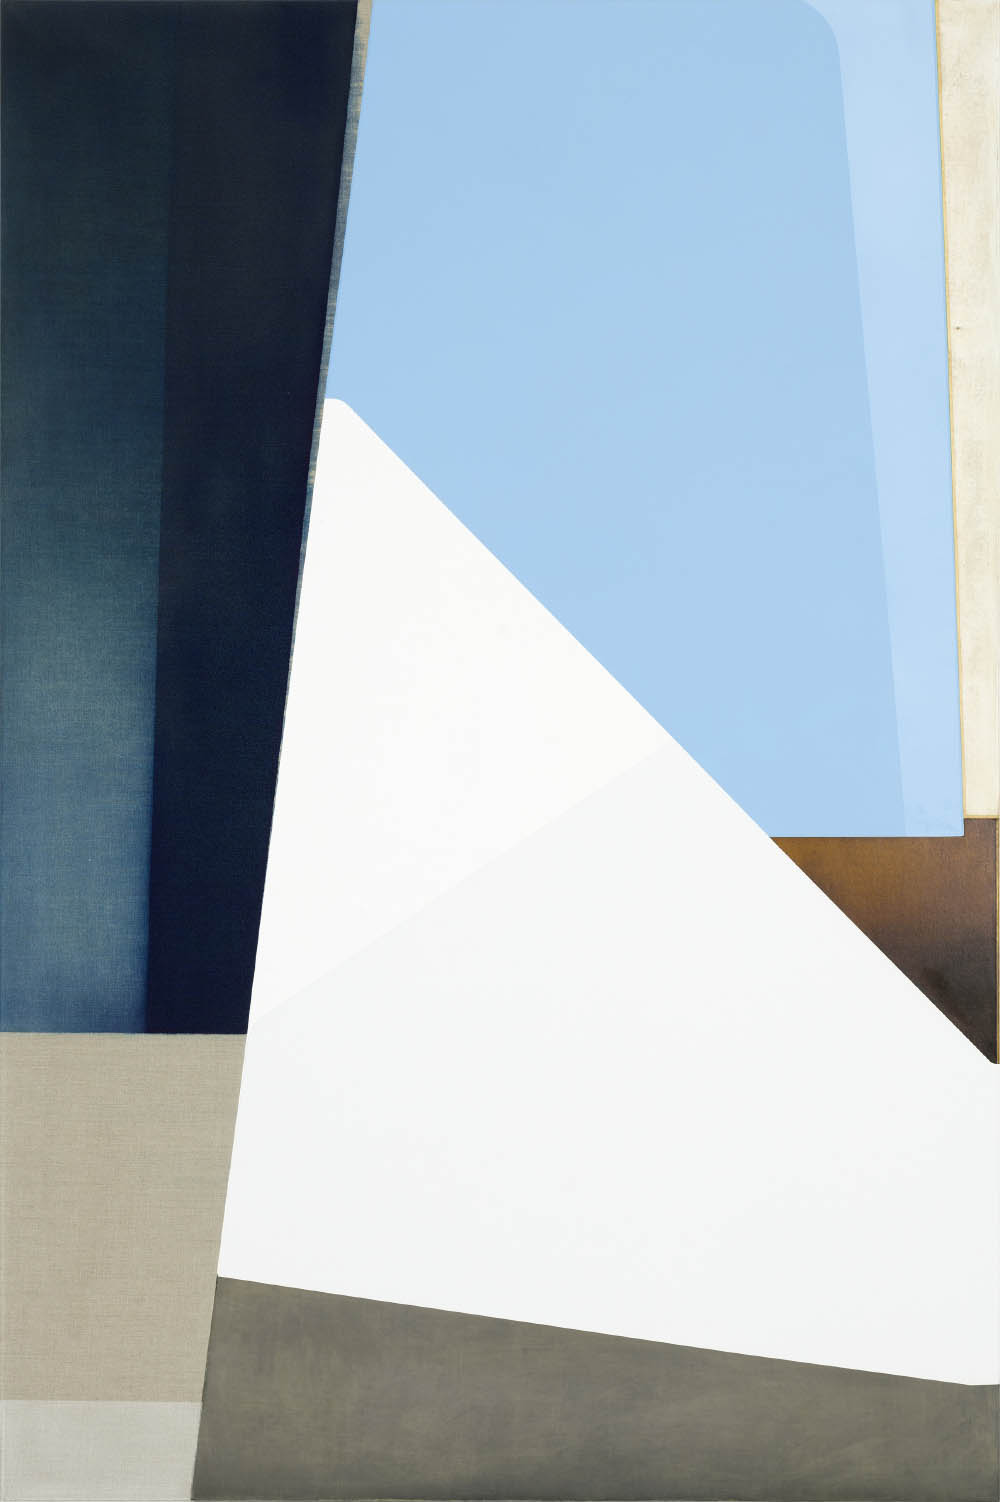 Untitled, 2015, oil on canvas, 210 x 140 cm